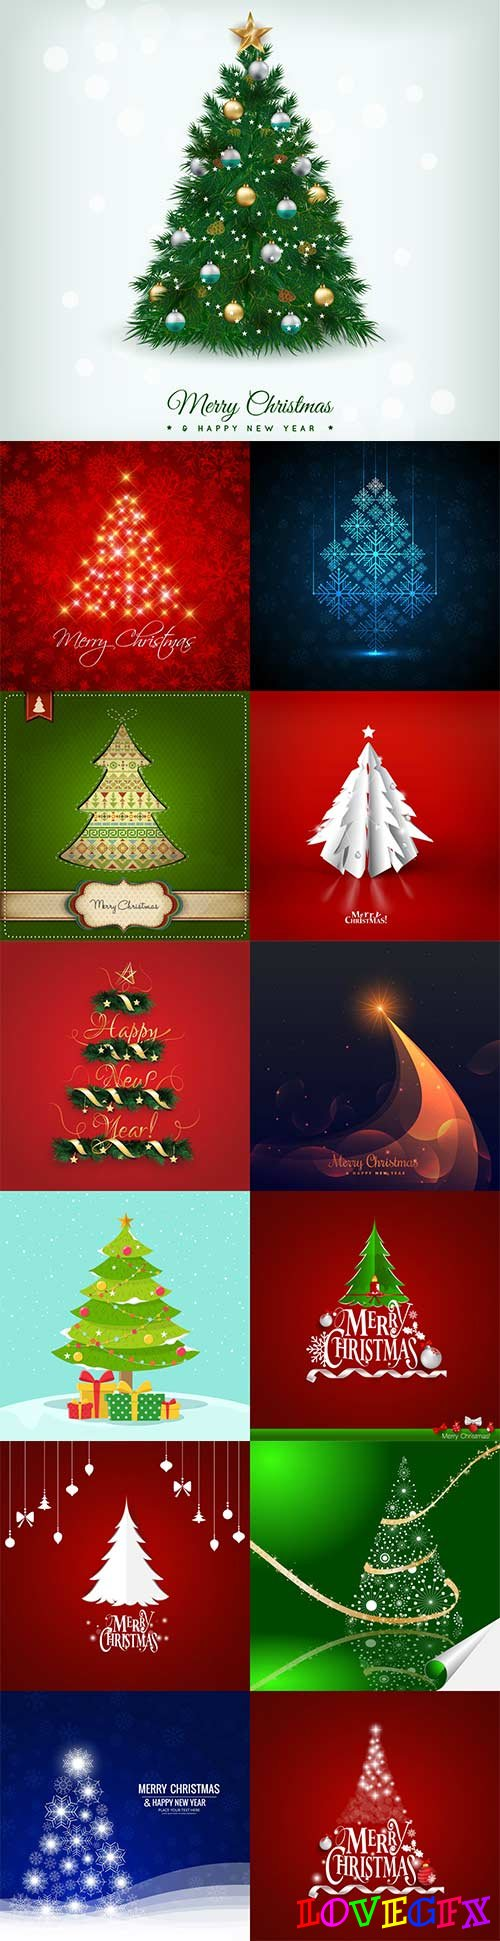 Christmas tree vector - 5